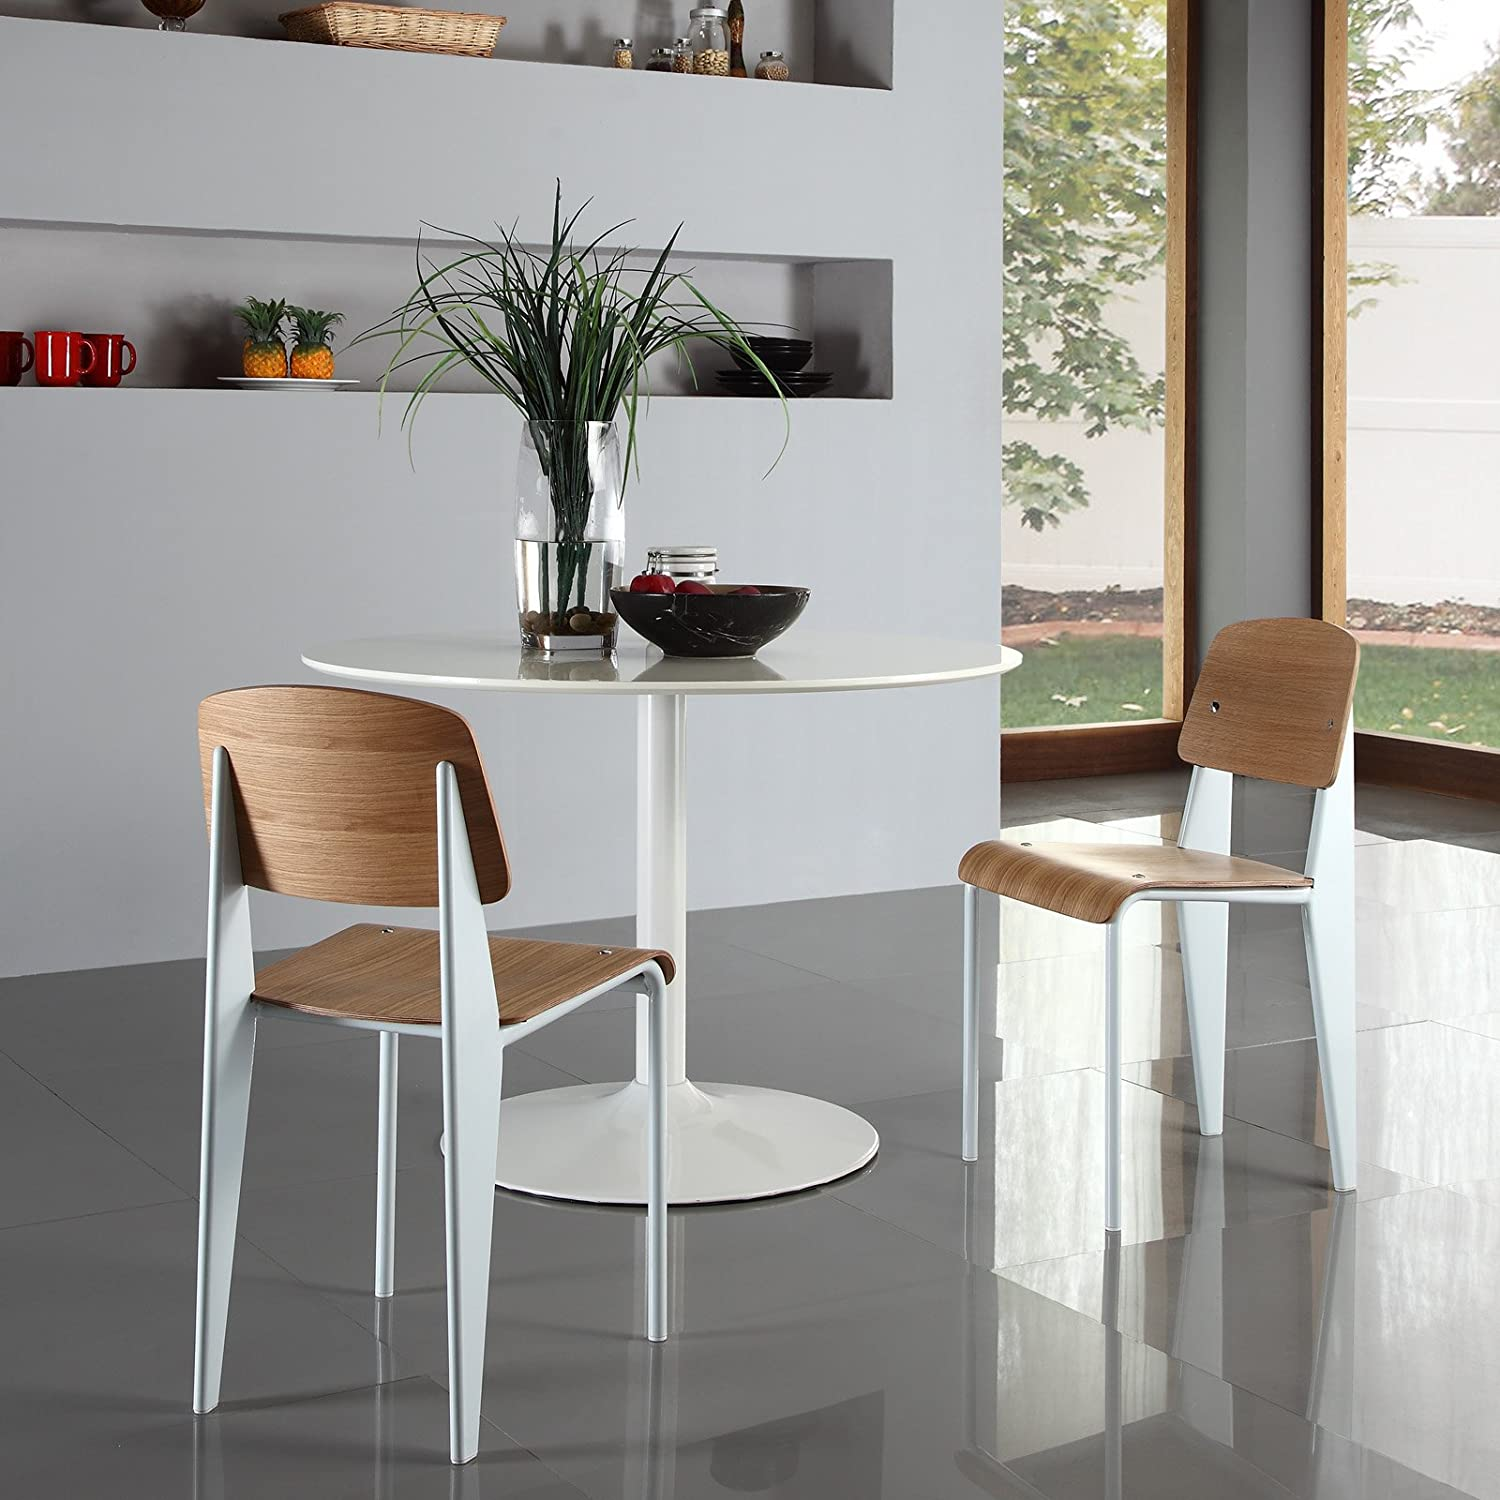 Amazon.com: Modway Jean Prouve Style Standard Chair In White: Kitchen U0026  Dining